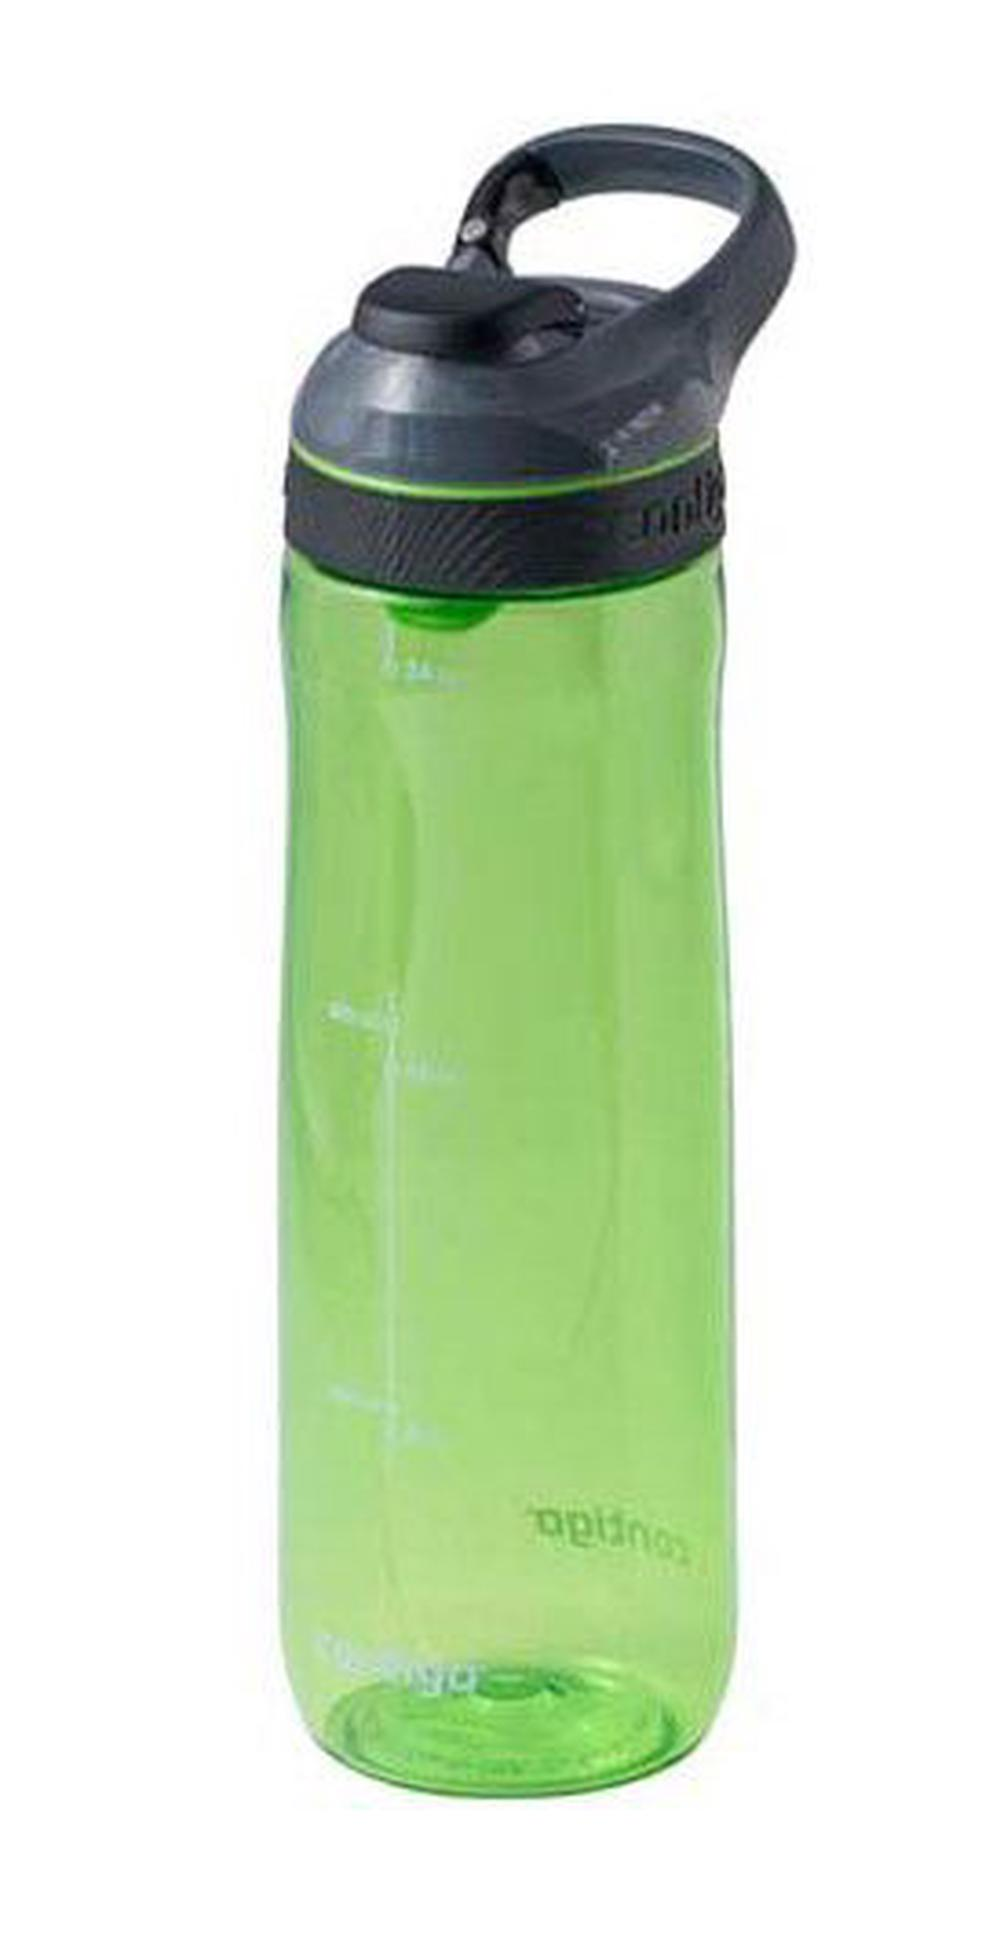 ebd6c96da0 Contigo Cortland Autoseal Water Bottle With Infuser (Citron). by Contigo